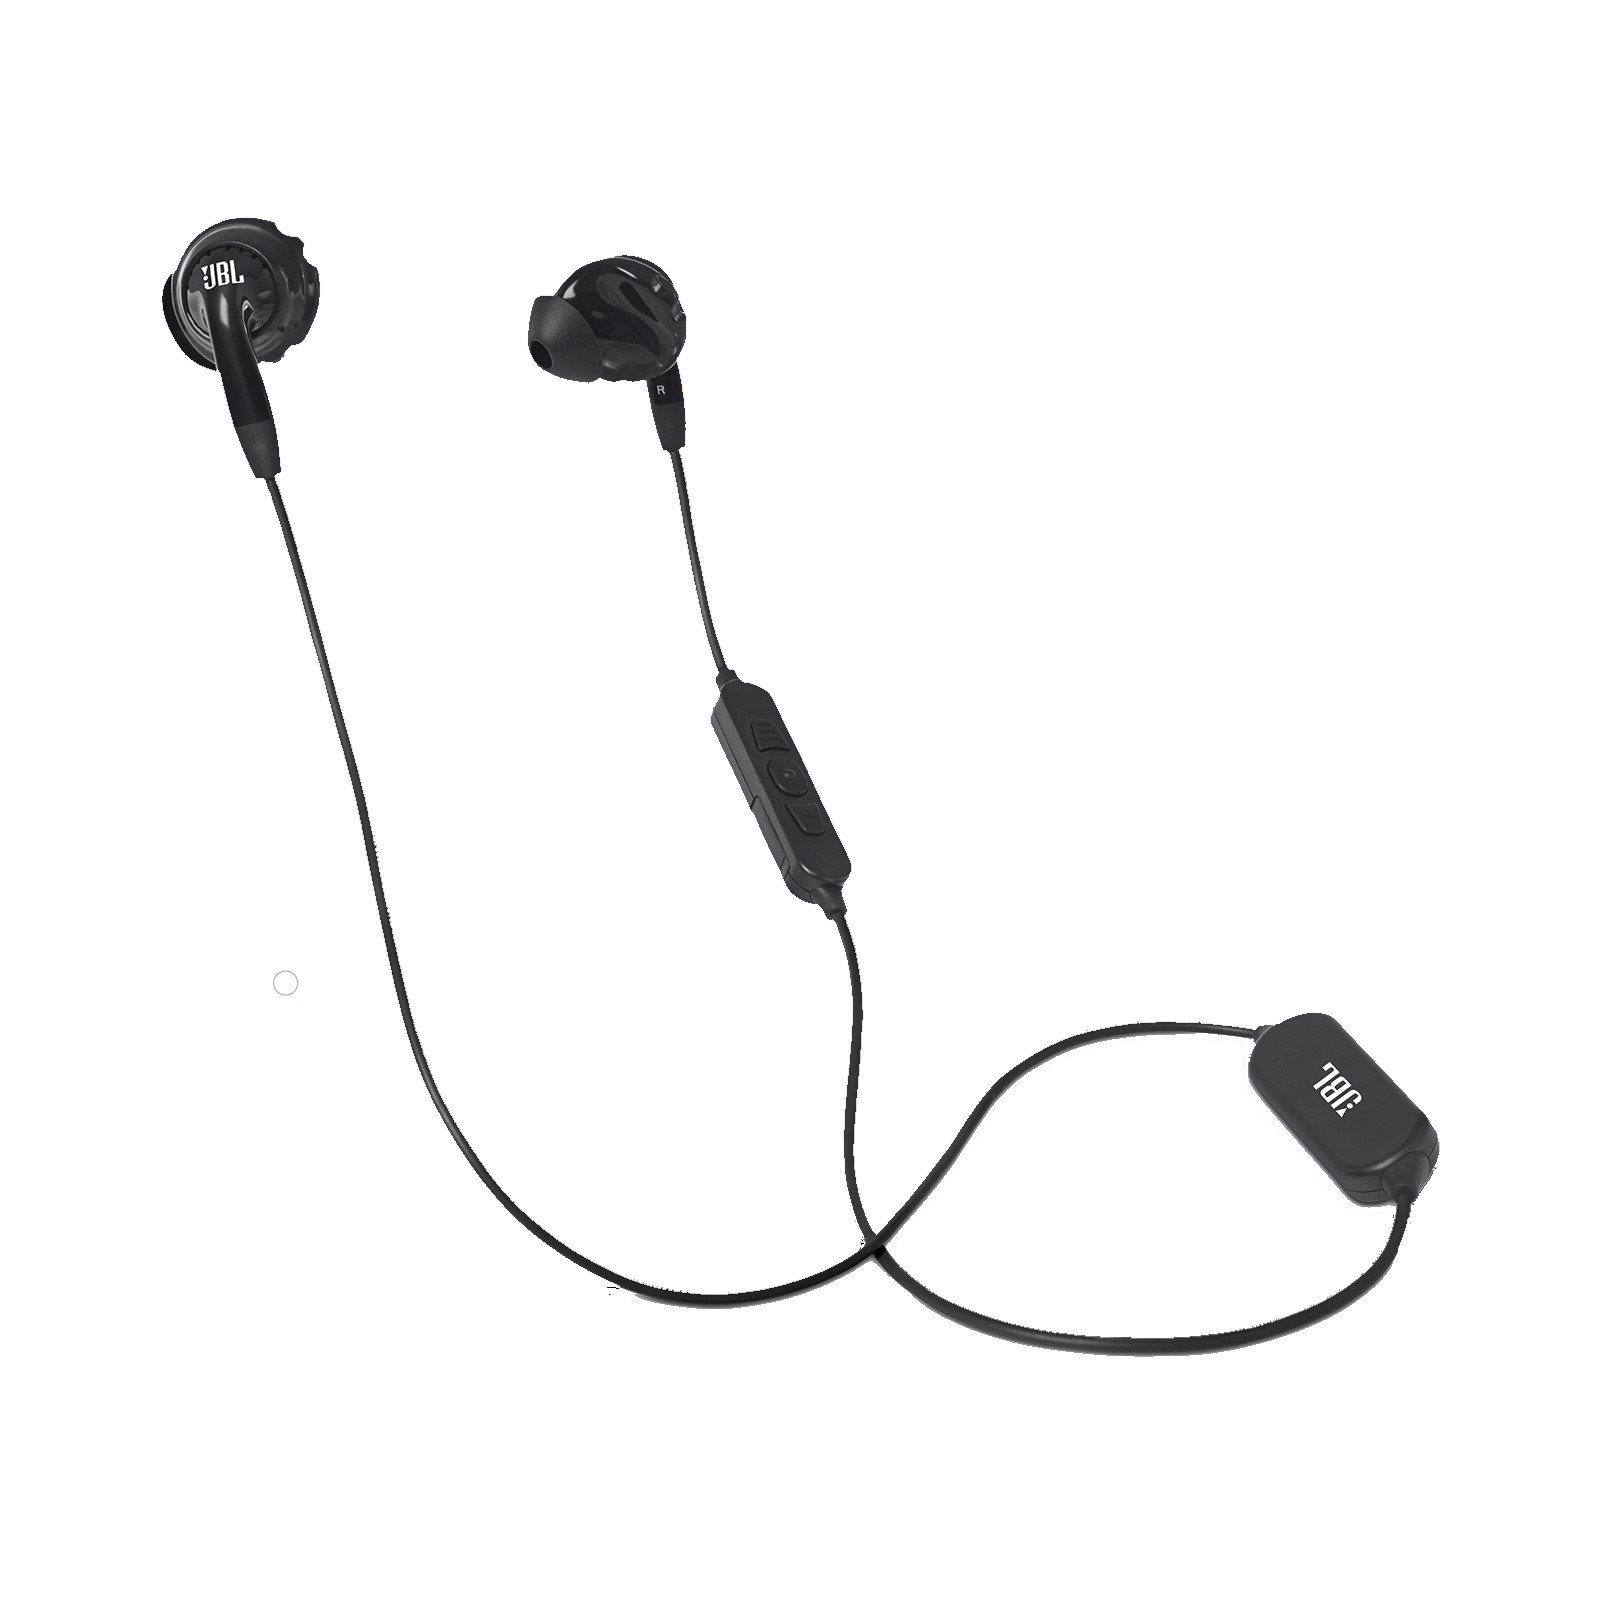 JBL Inspire 500 Outdoor Activity Style Sports in-Ear Earbuds Bluetooth Wireless Sports Earbud Headphones Mic Remote, Black (Non-Retail Packaging)